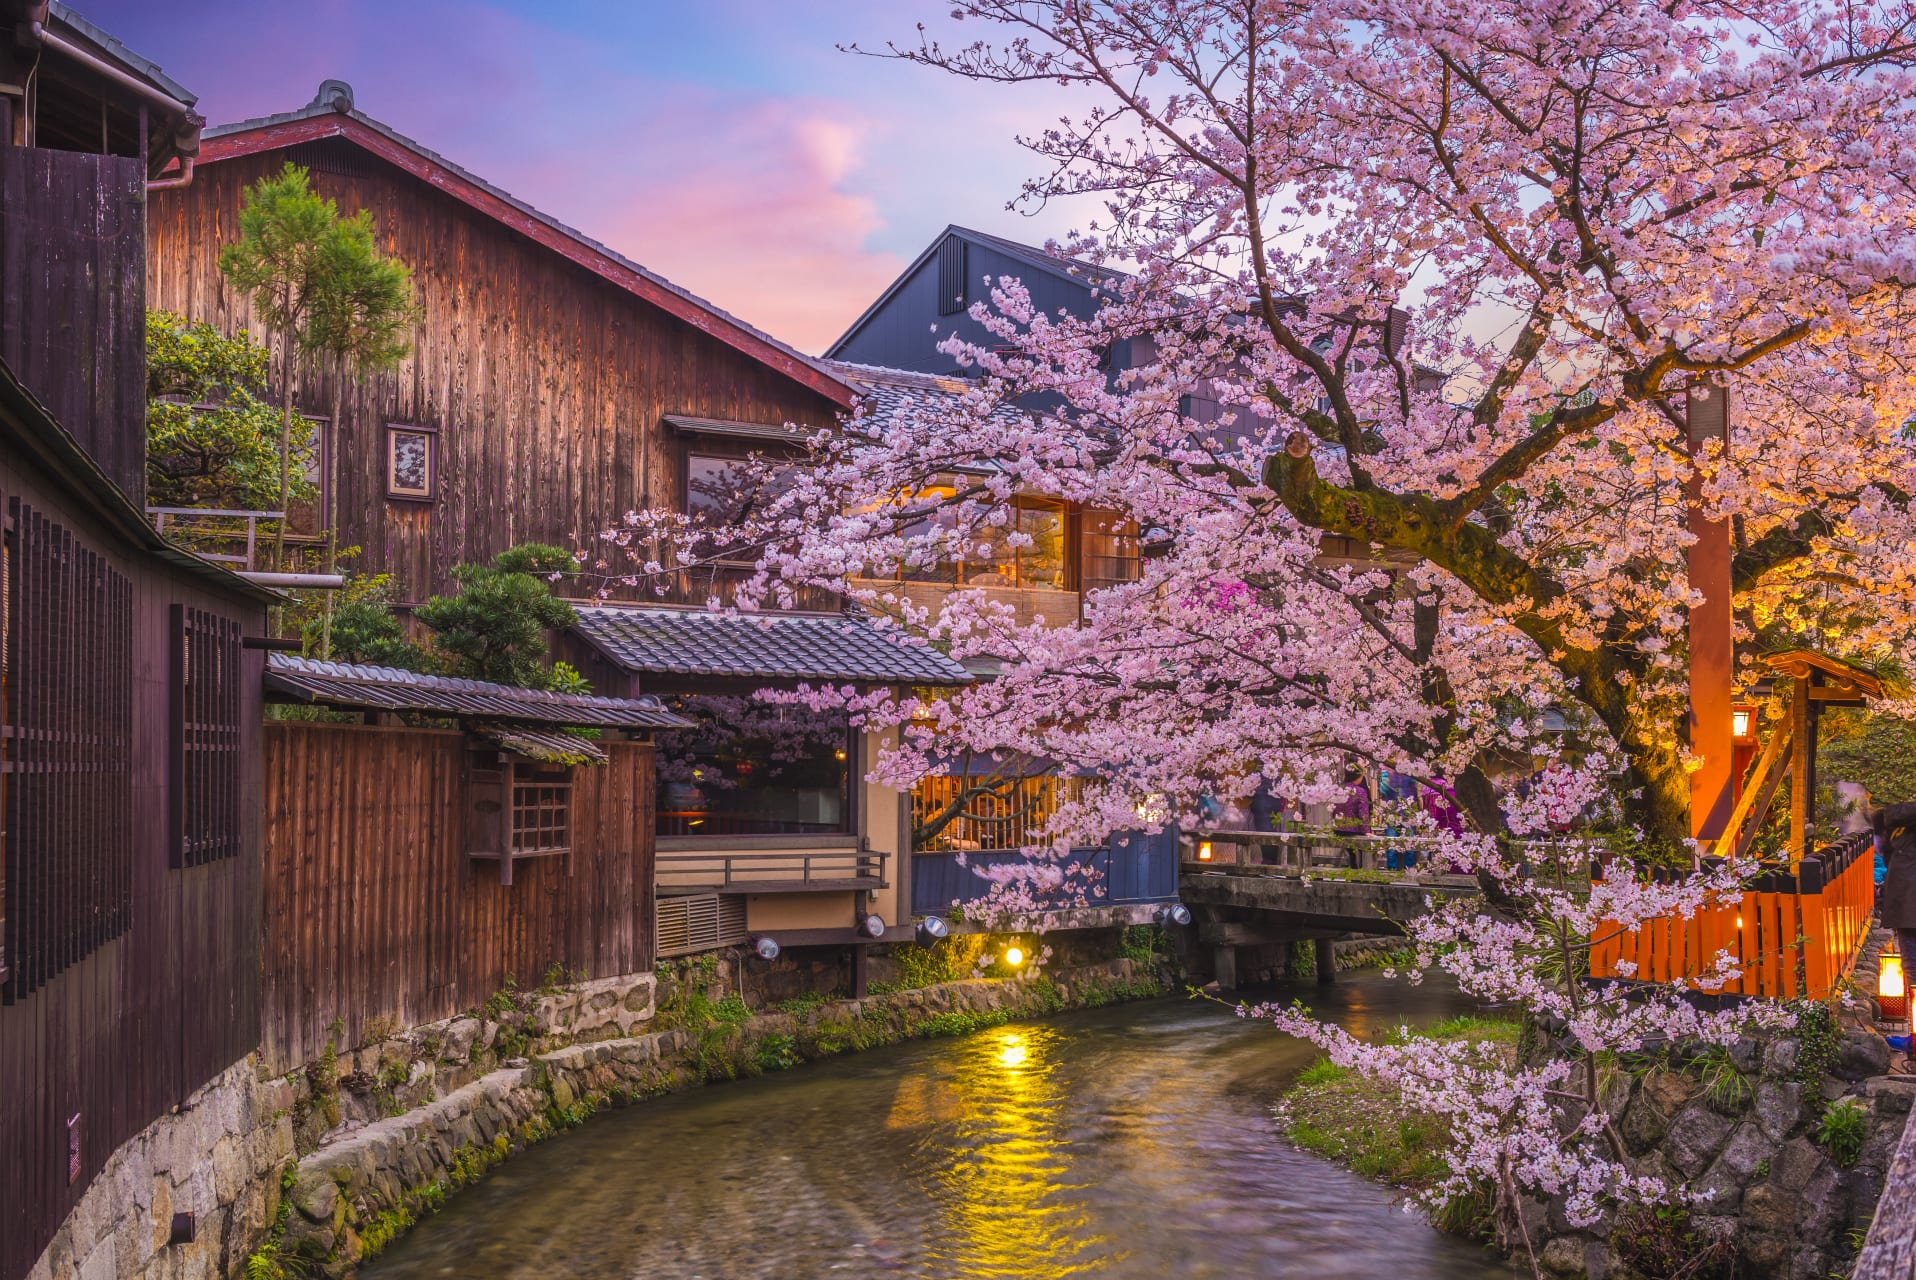 Kyoto - A Night Stroll under the Cherry Blossoms in Kyoto